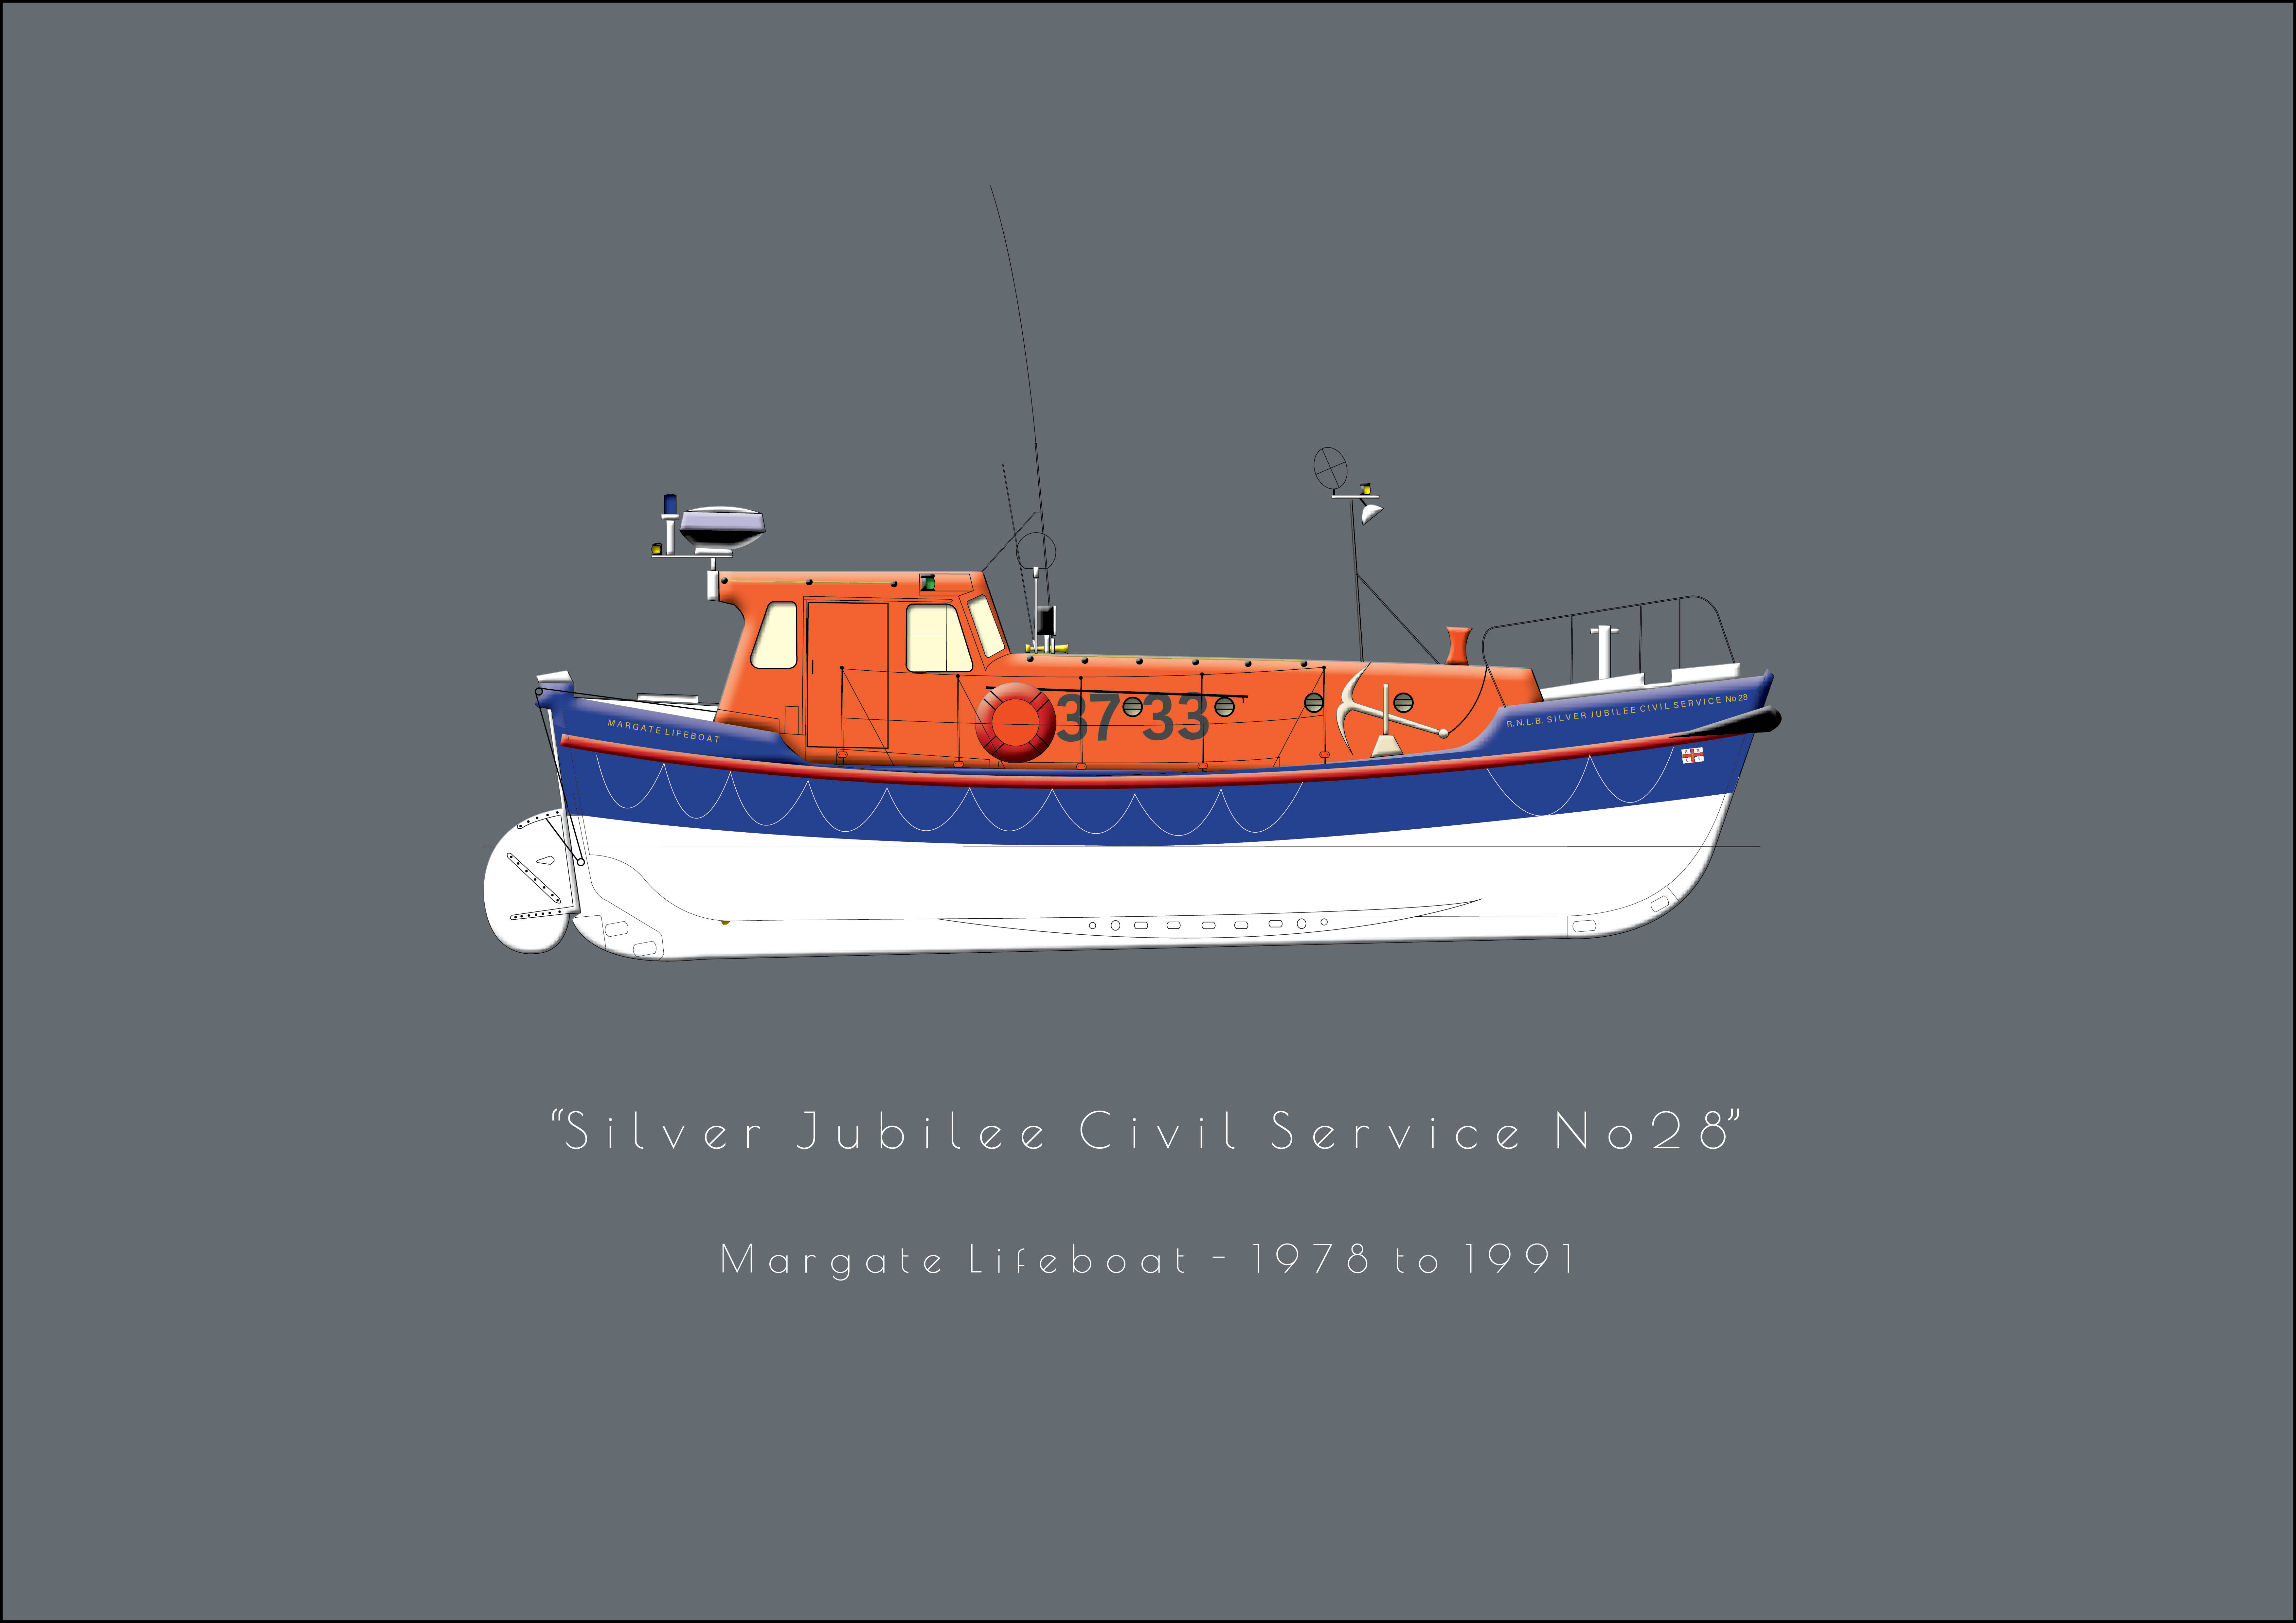 Margate Lifeboat - Single Postcard